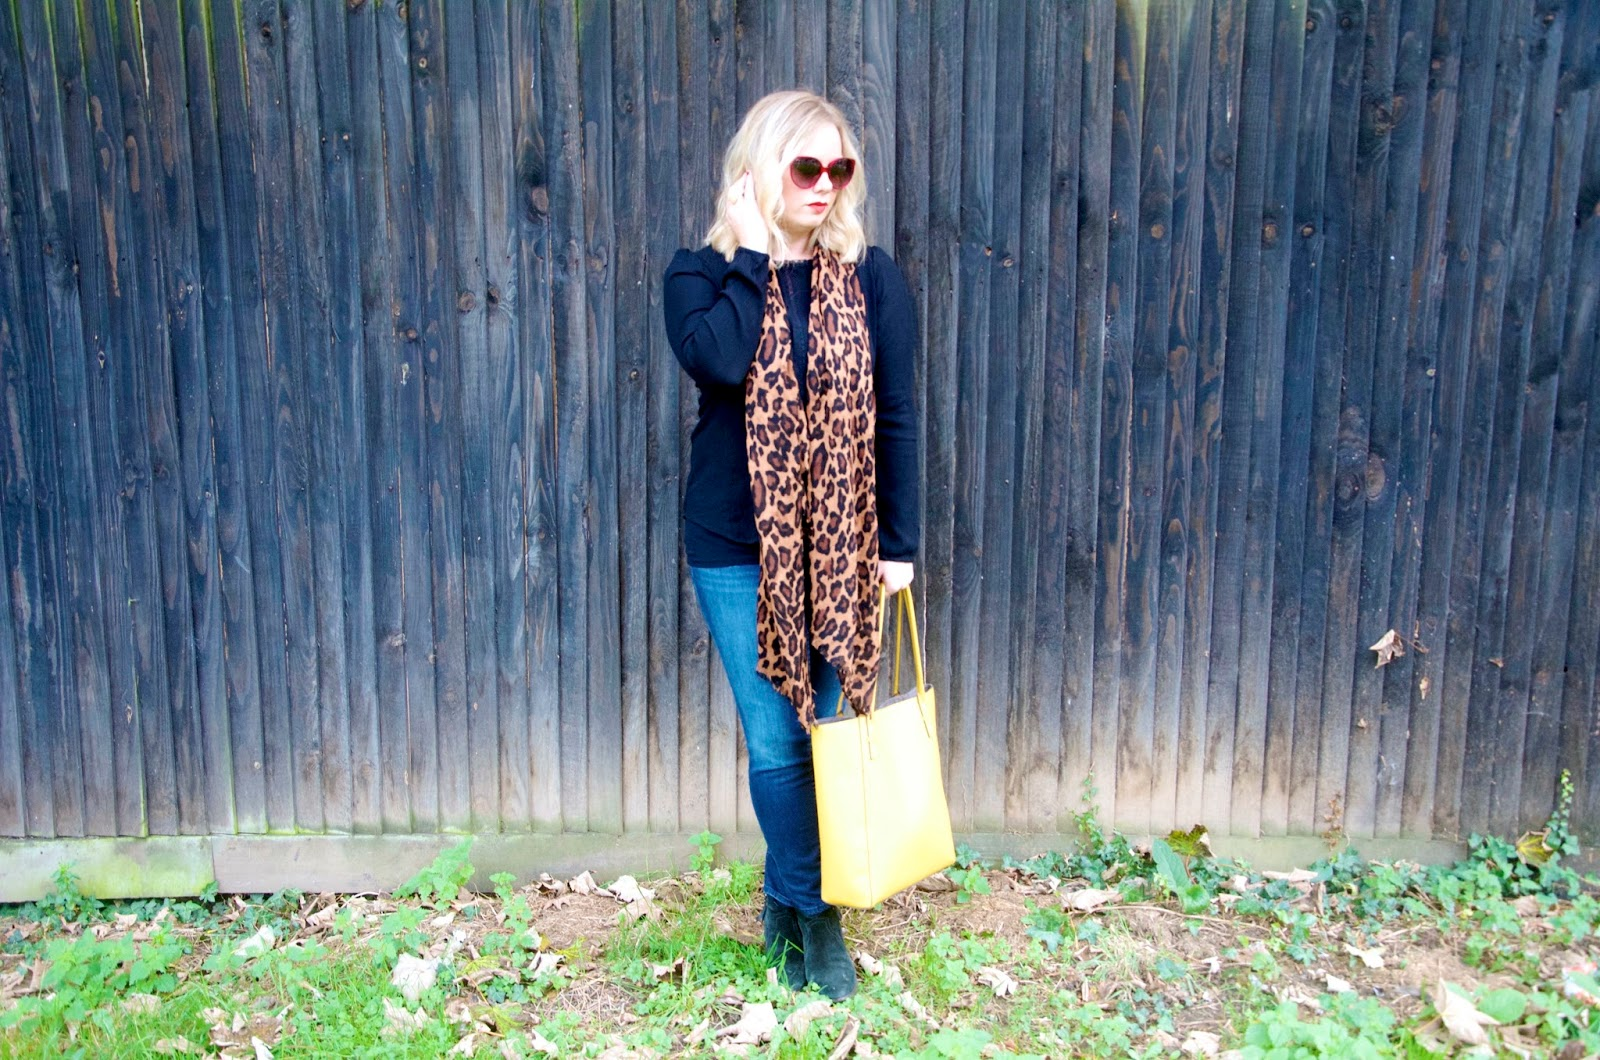 Jeans, leopard, yellow purse and distressed wooden wall